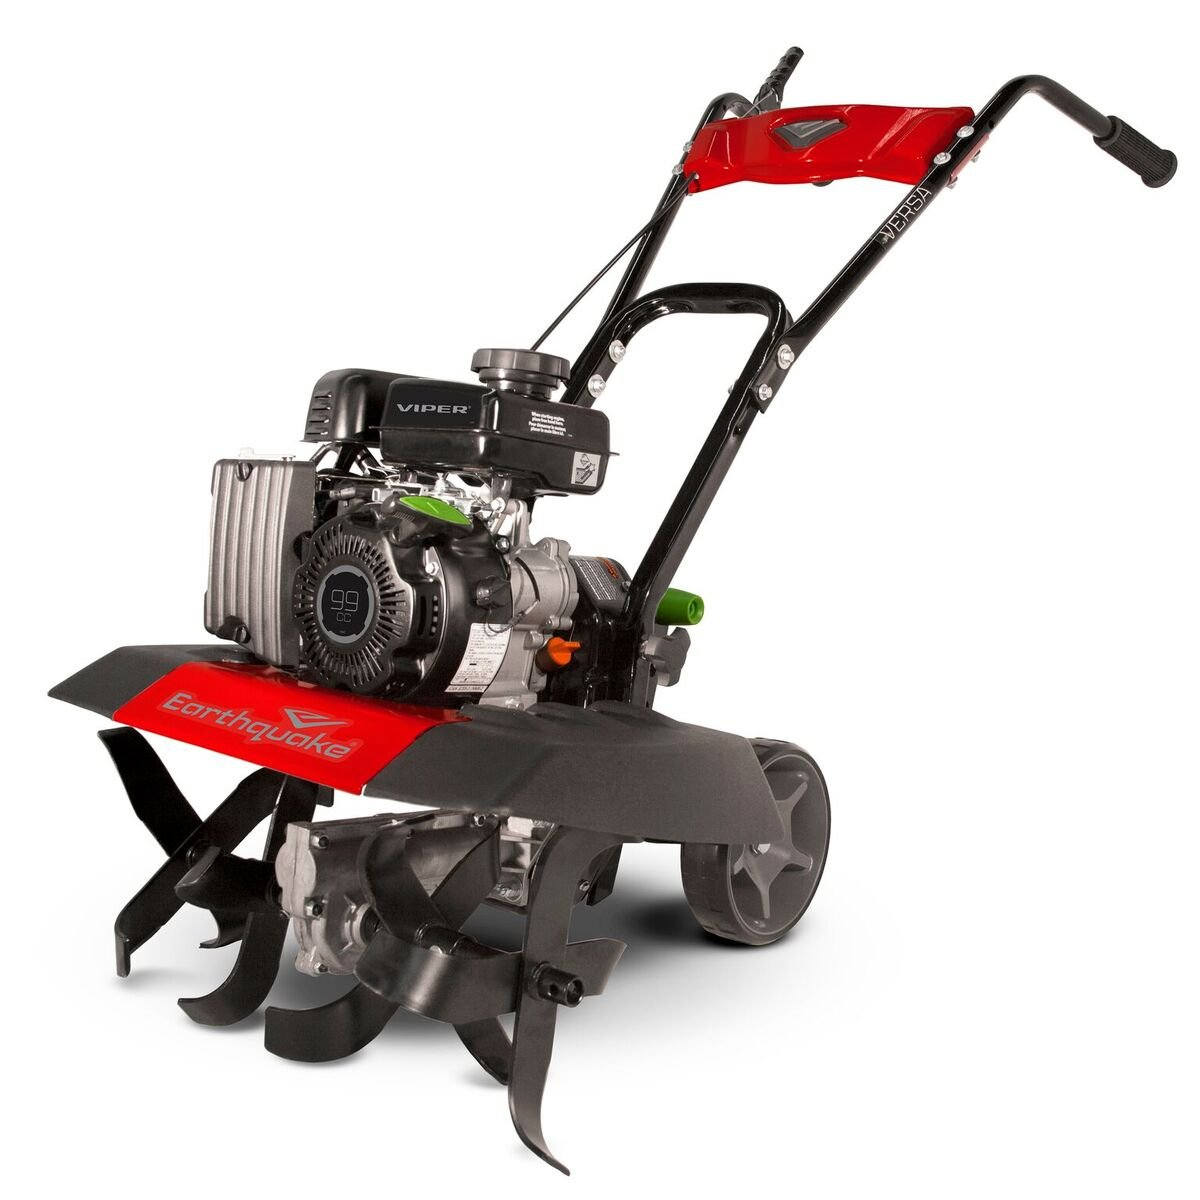 Earthquake 20015 Versa Front Tine Tiller Cultivator with 99cc 4-cycle Viper Engine, 5 Year Warranty by Earthquake